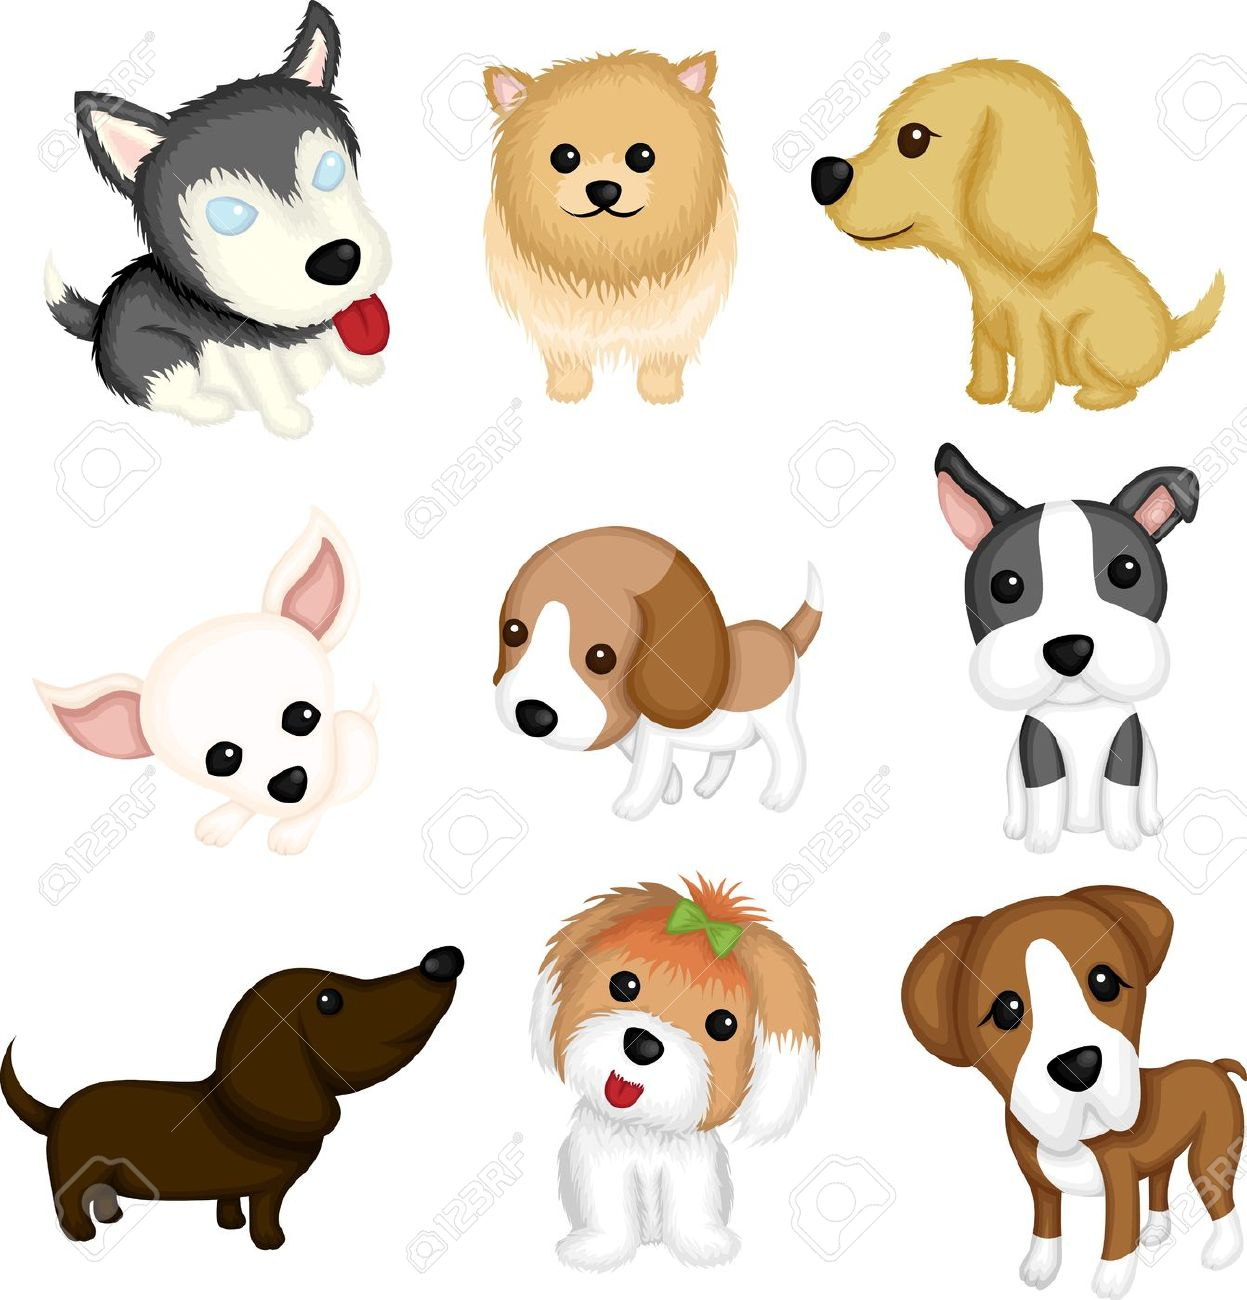 Chihuahua clipart vector. Cute pencil and in